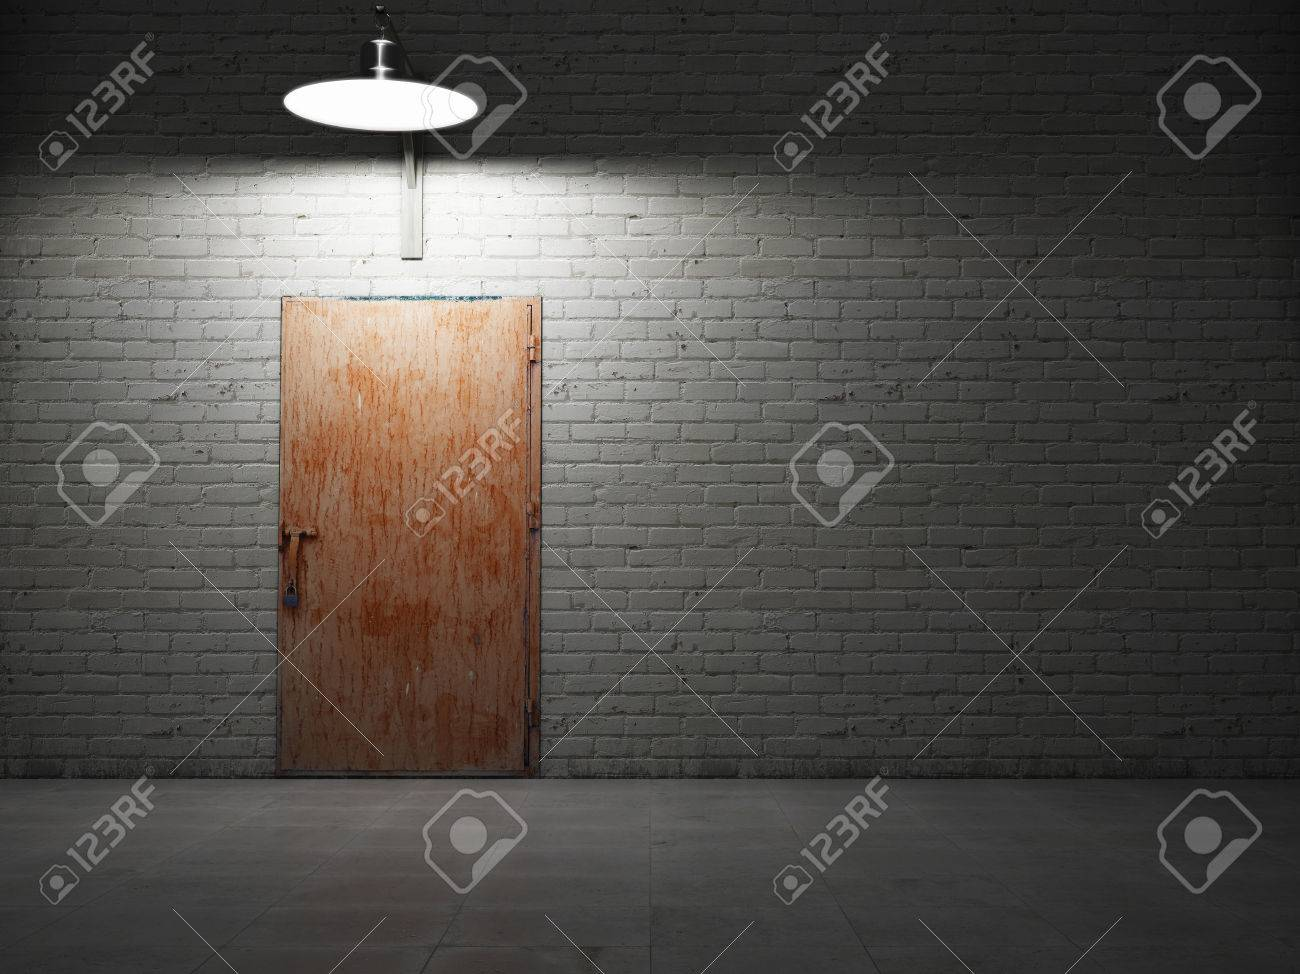 Dirty brick wall illuminated by lamp with rusty metal door Stock Photo - 23182051